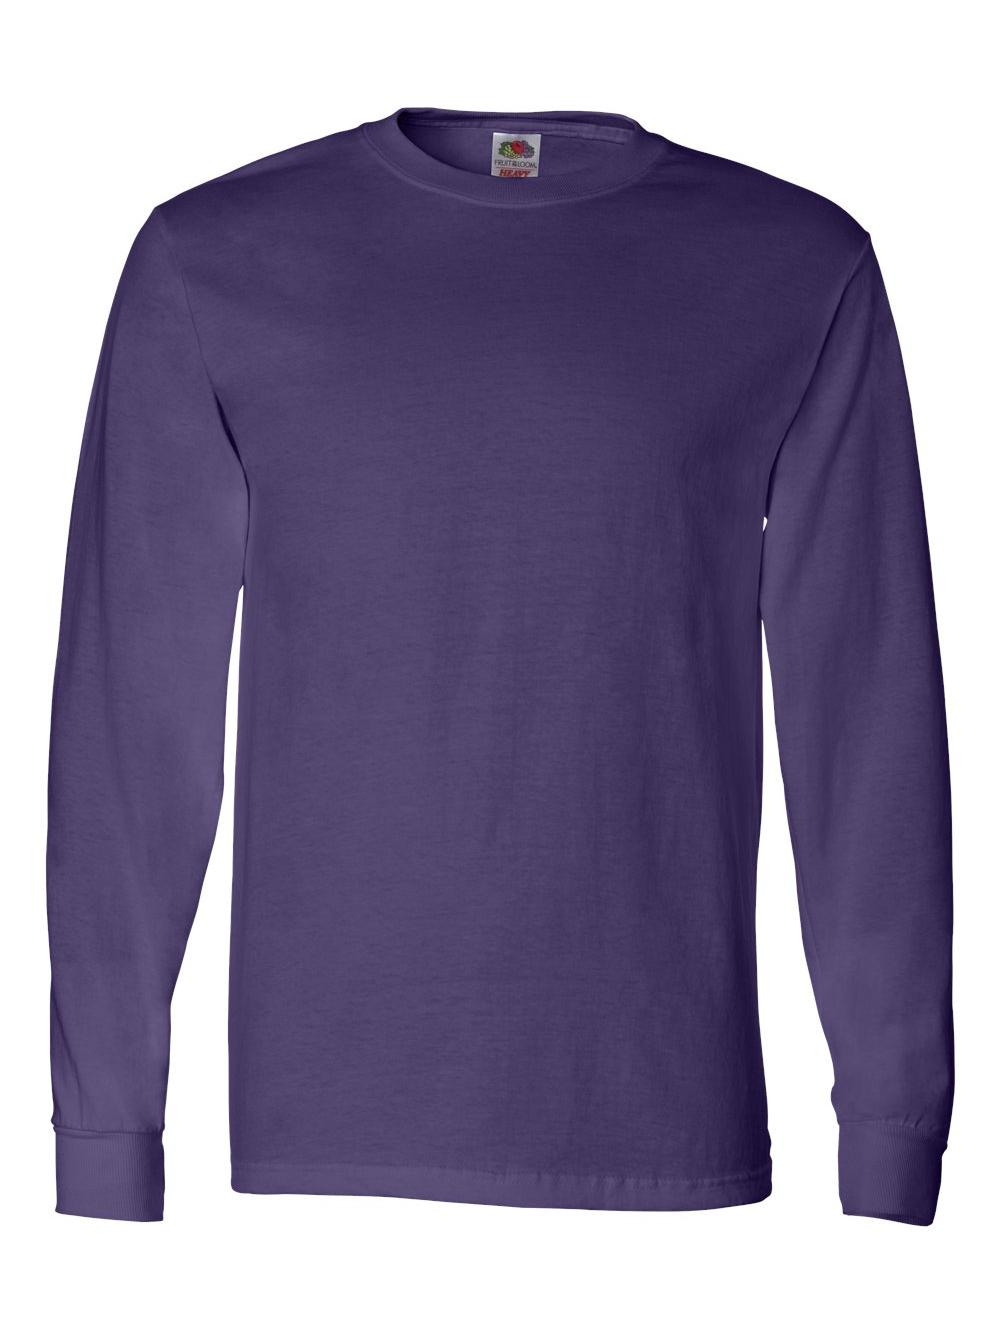 Fruit-of-the-Loom-HD-Cotton-Long-Sleeve-T-Shirt-4930R thumbnail 57